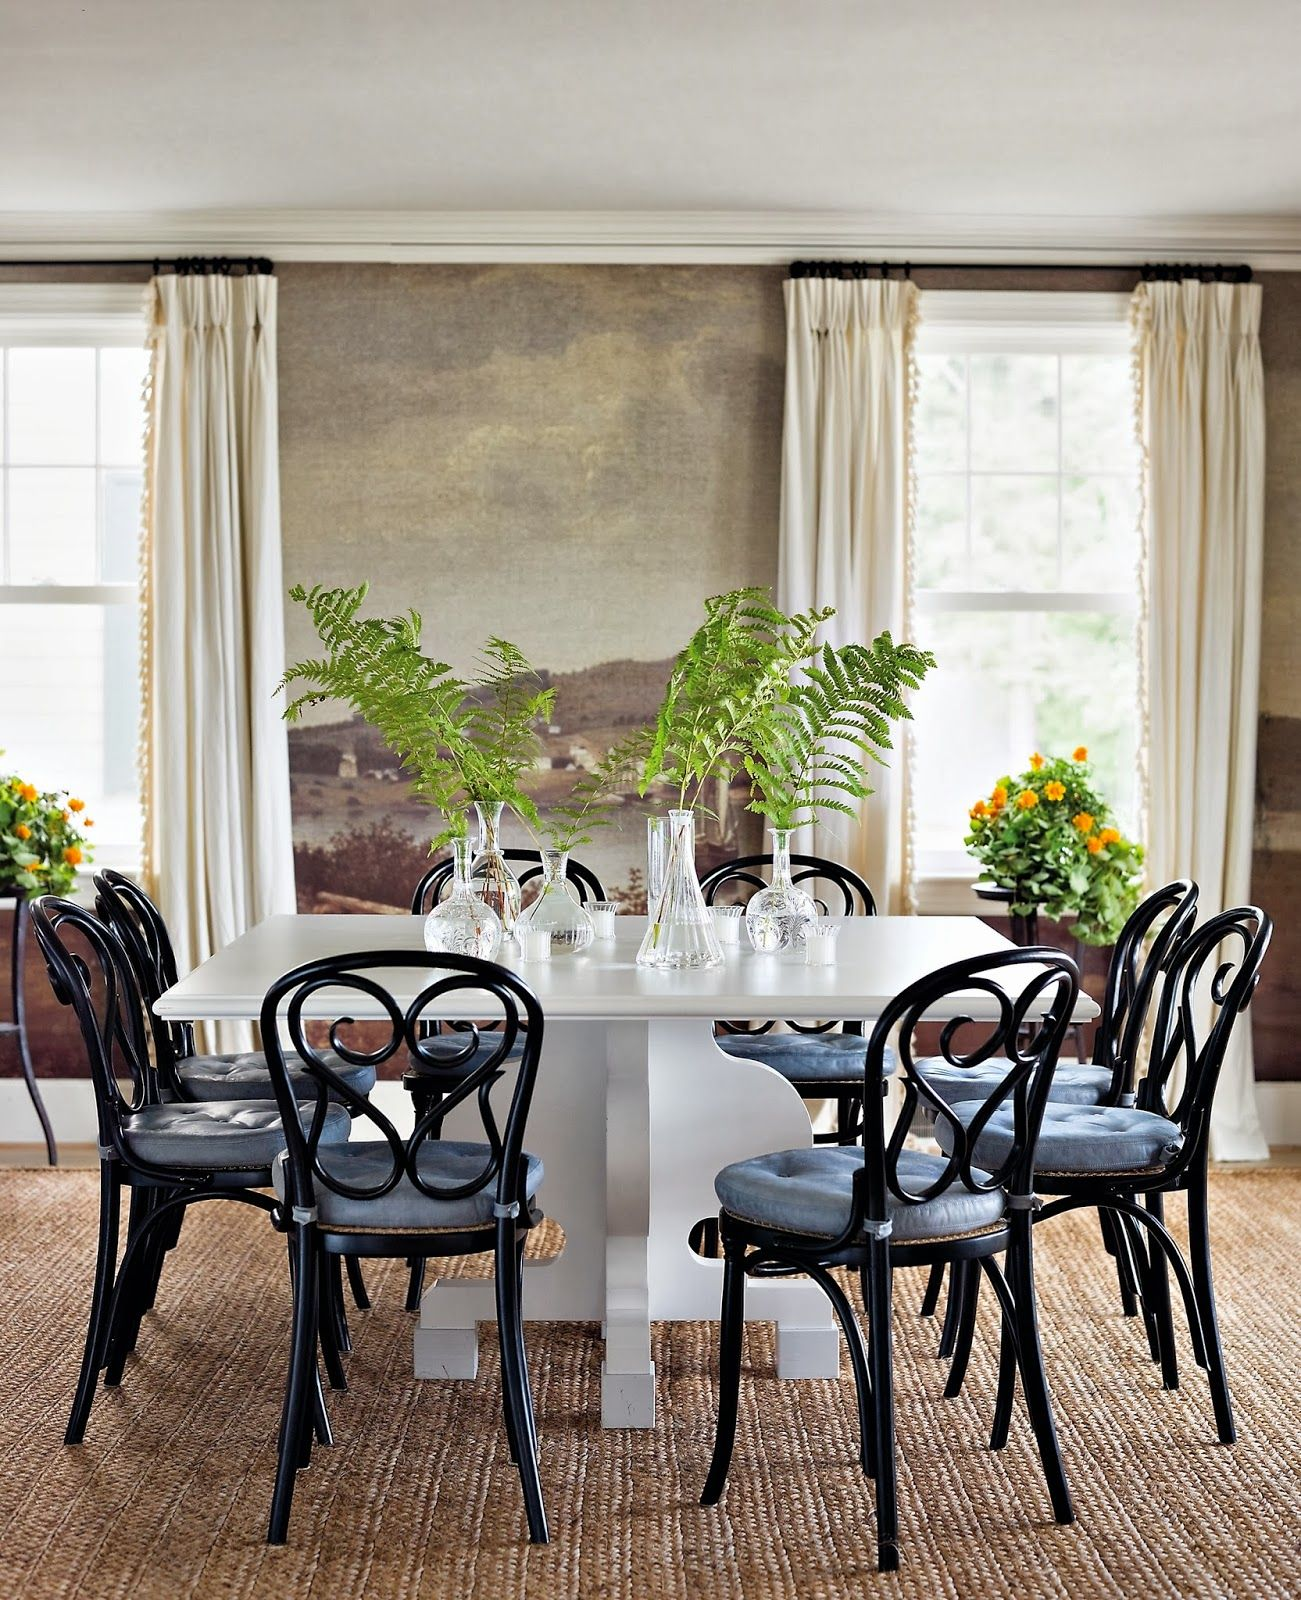 Phenomenal A Family Home In Maine Dining Rooms Bentwood Chairs Interior Design Ideas Gentotryabchikinfo